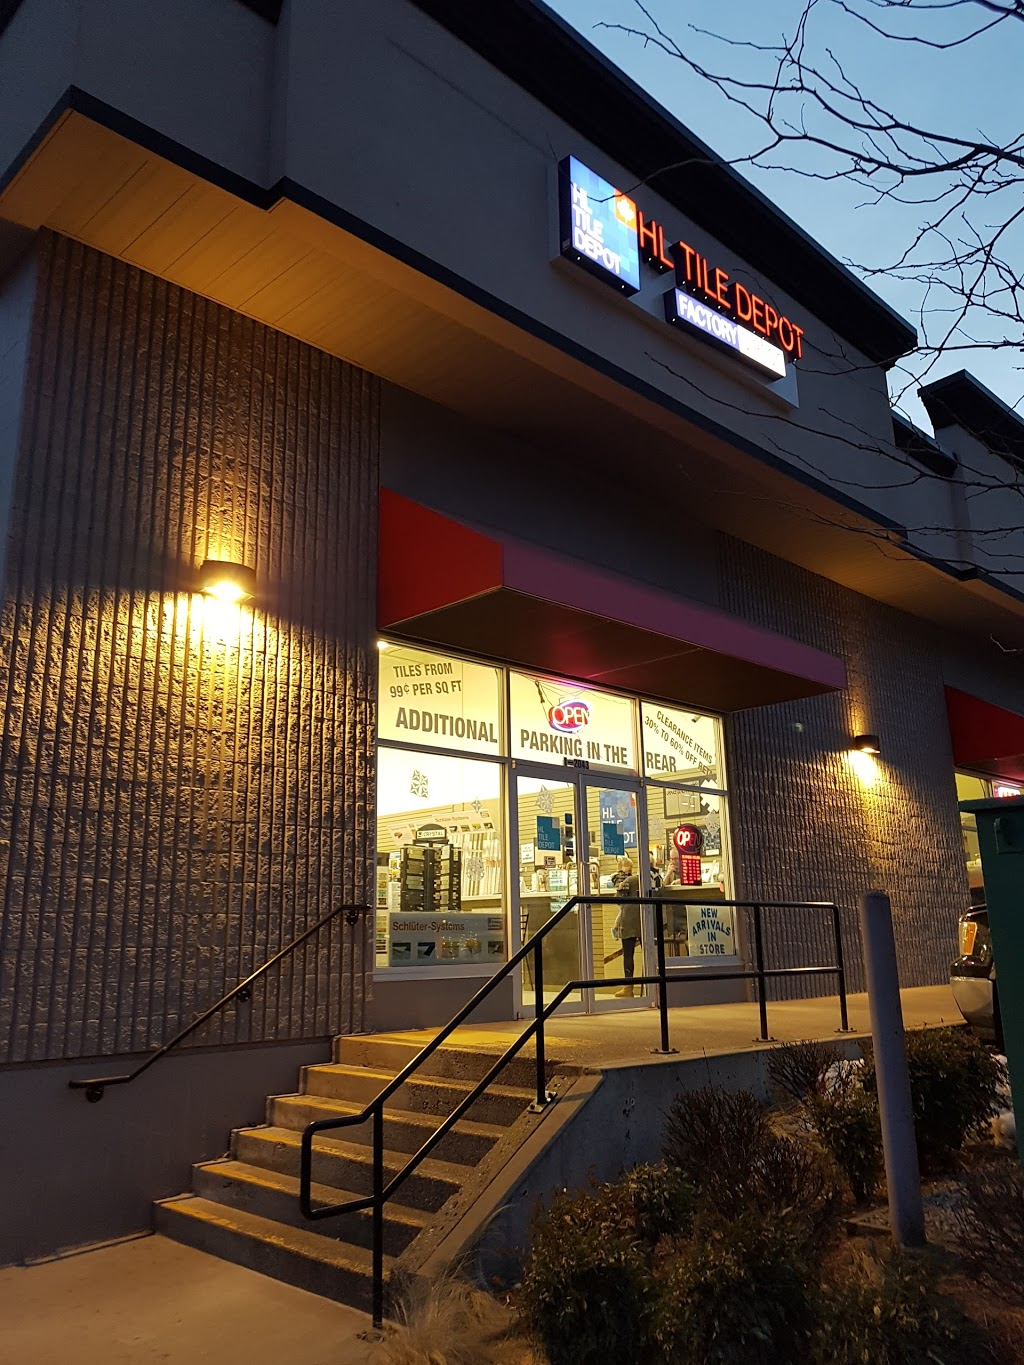 HL Tile Depot | home goods store | 2043 Abbotsford Way #1, Abbotsford, BC V2S 6X8, Canada | 6048700211 OR +1 604-870-0211